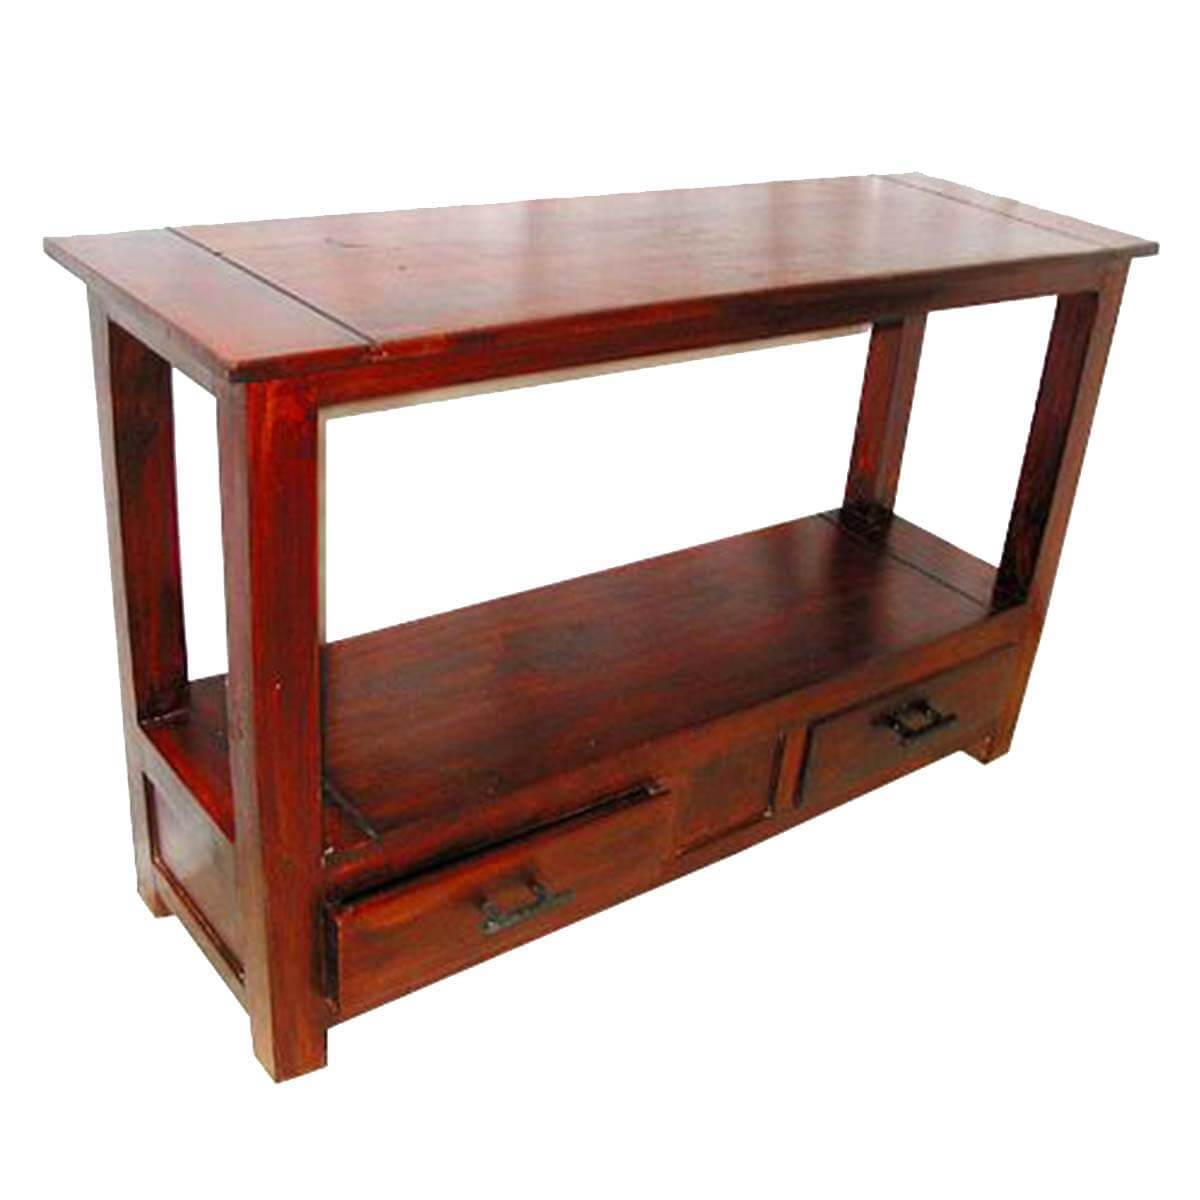 Foyer Console Images : Solid wood console hall entry foyer table furniture